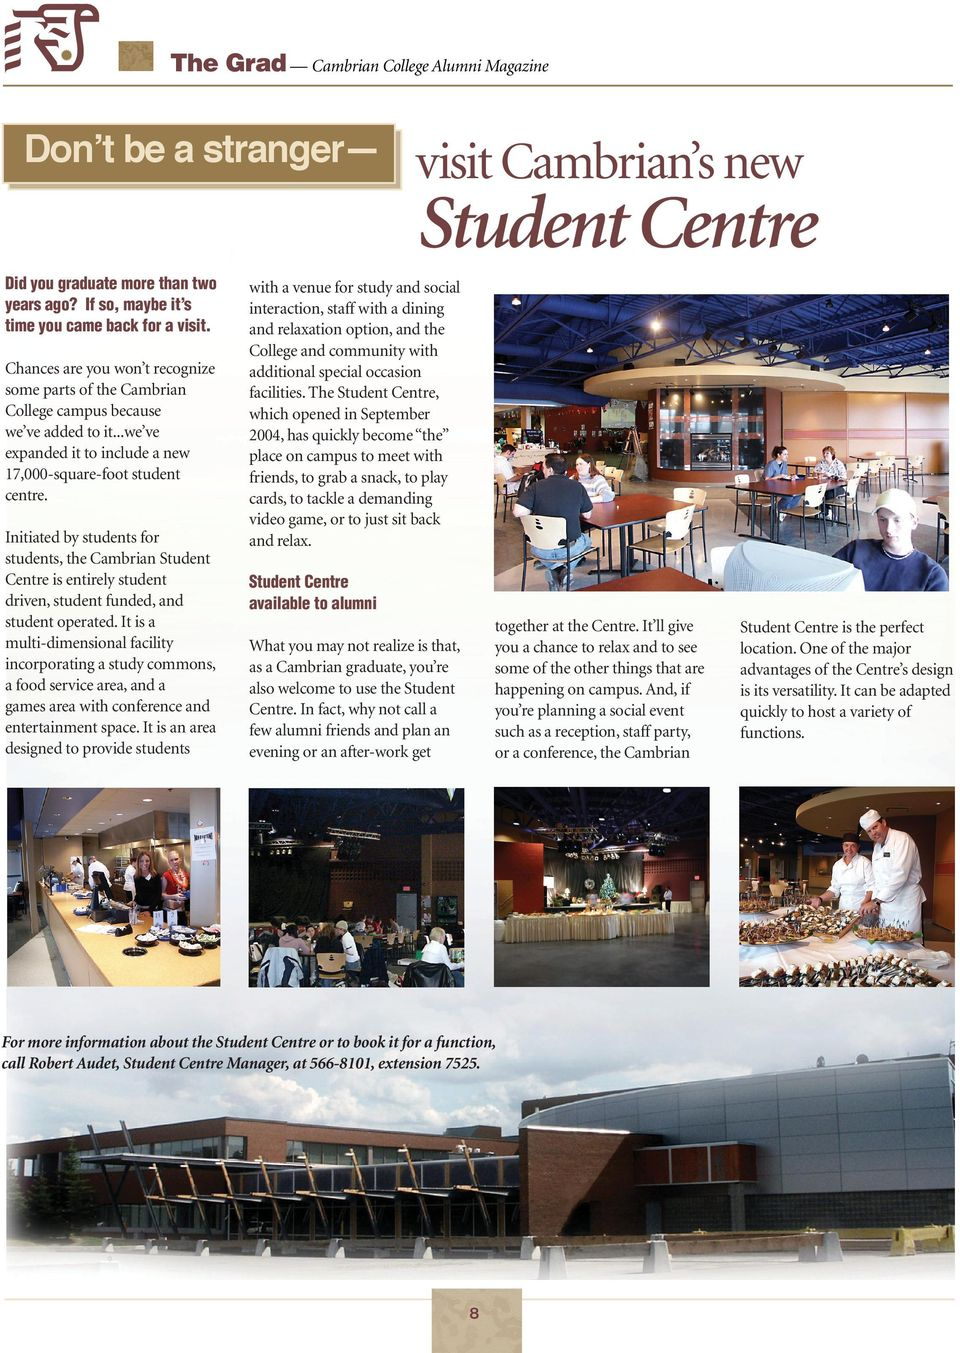 Initiated by students for students, the Cambrian Student Centre is entirely student driven, student funded, and student operated.